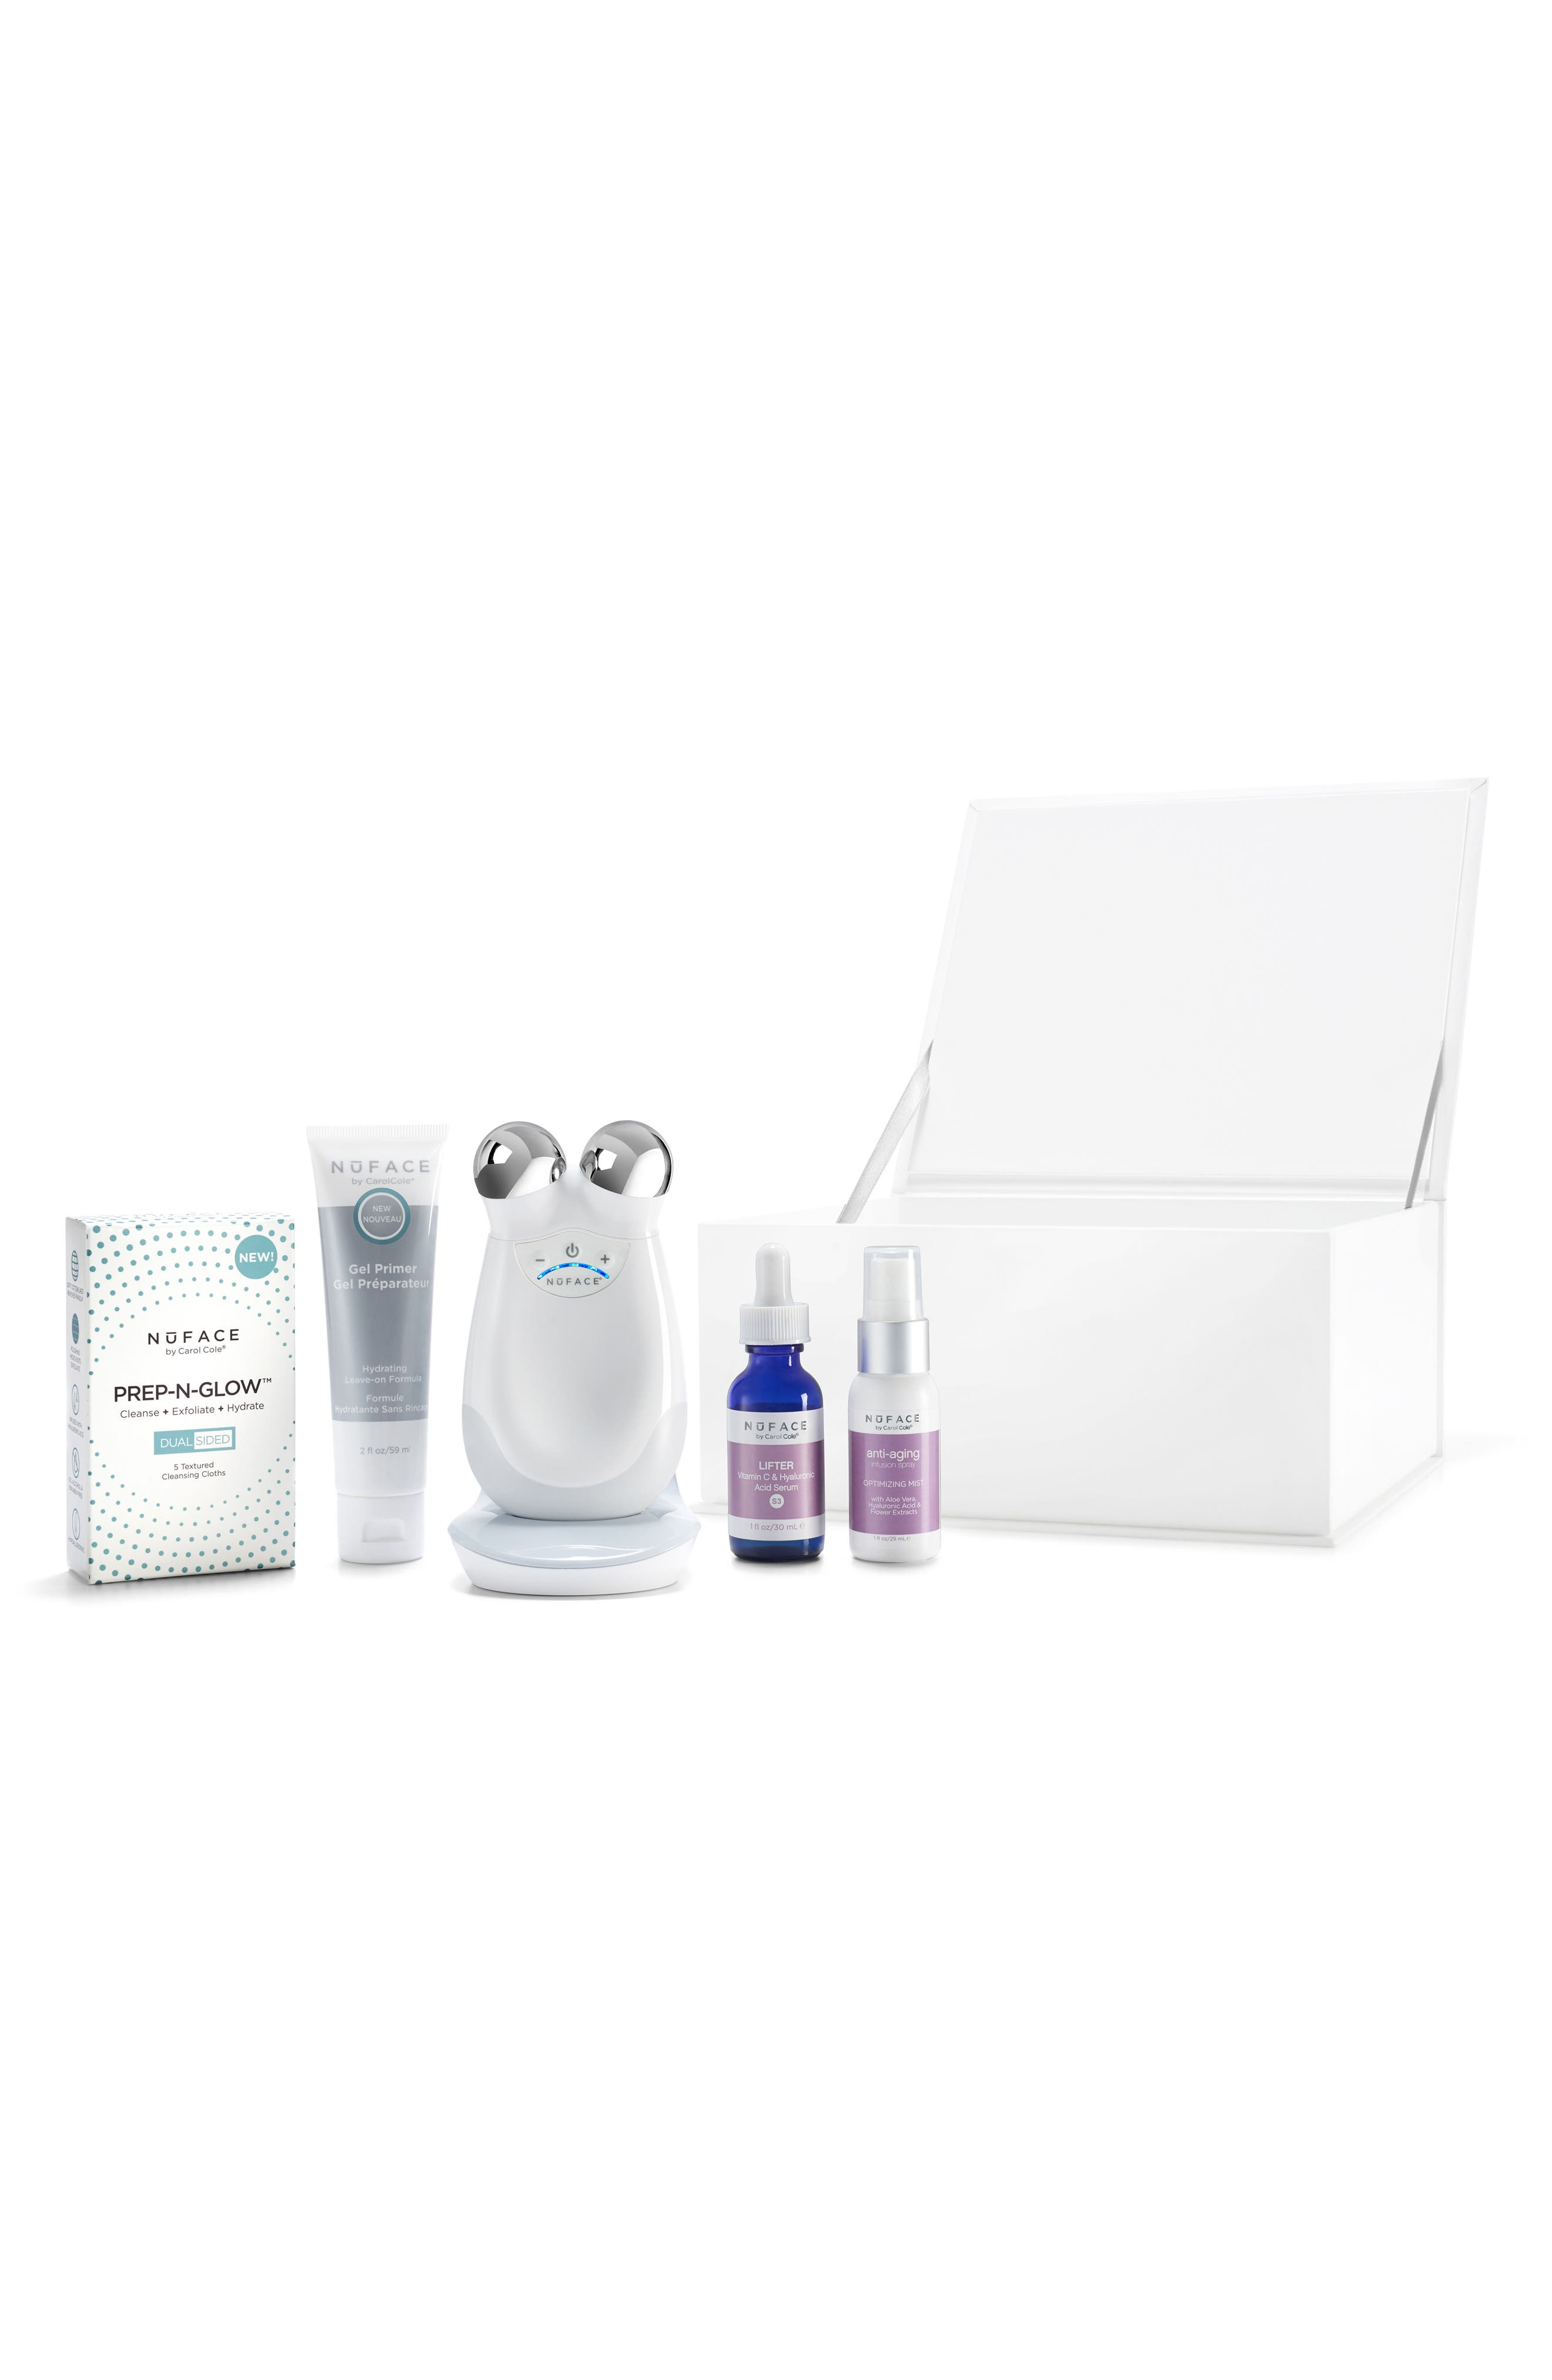 Alternate Image 1 Selected - NuFACE® Infinite Glow Complete Microcurrent + Hydration Collection ($441 Value)